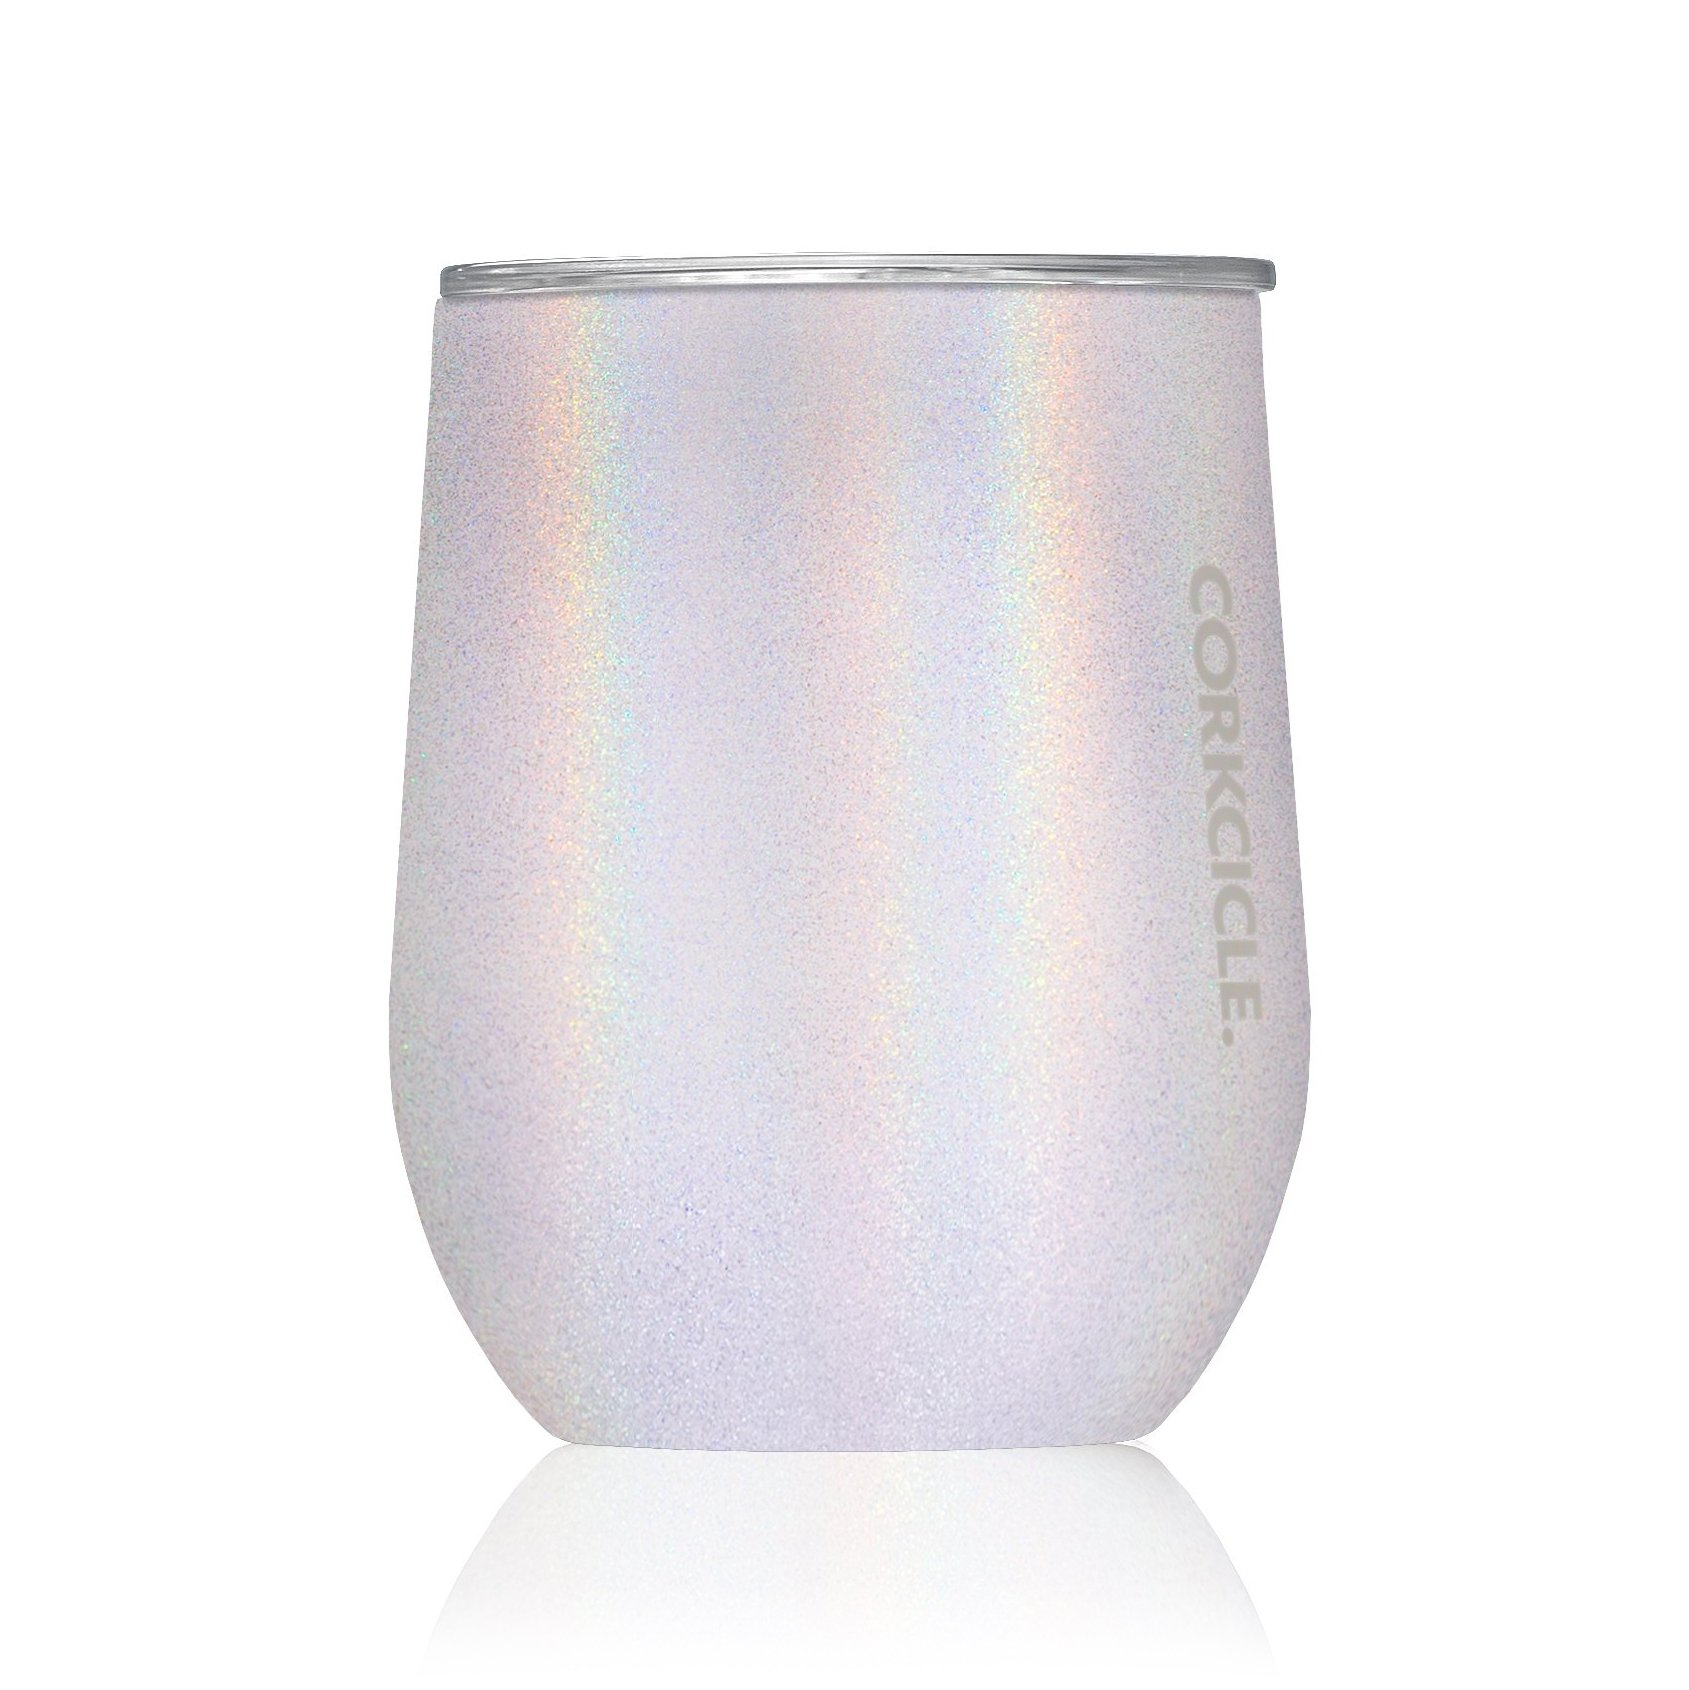 Corkcicle 12 oz Triple-Insulated Stemless Glass (Perfect for Wine) - Unicorn Magic